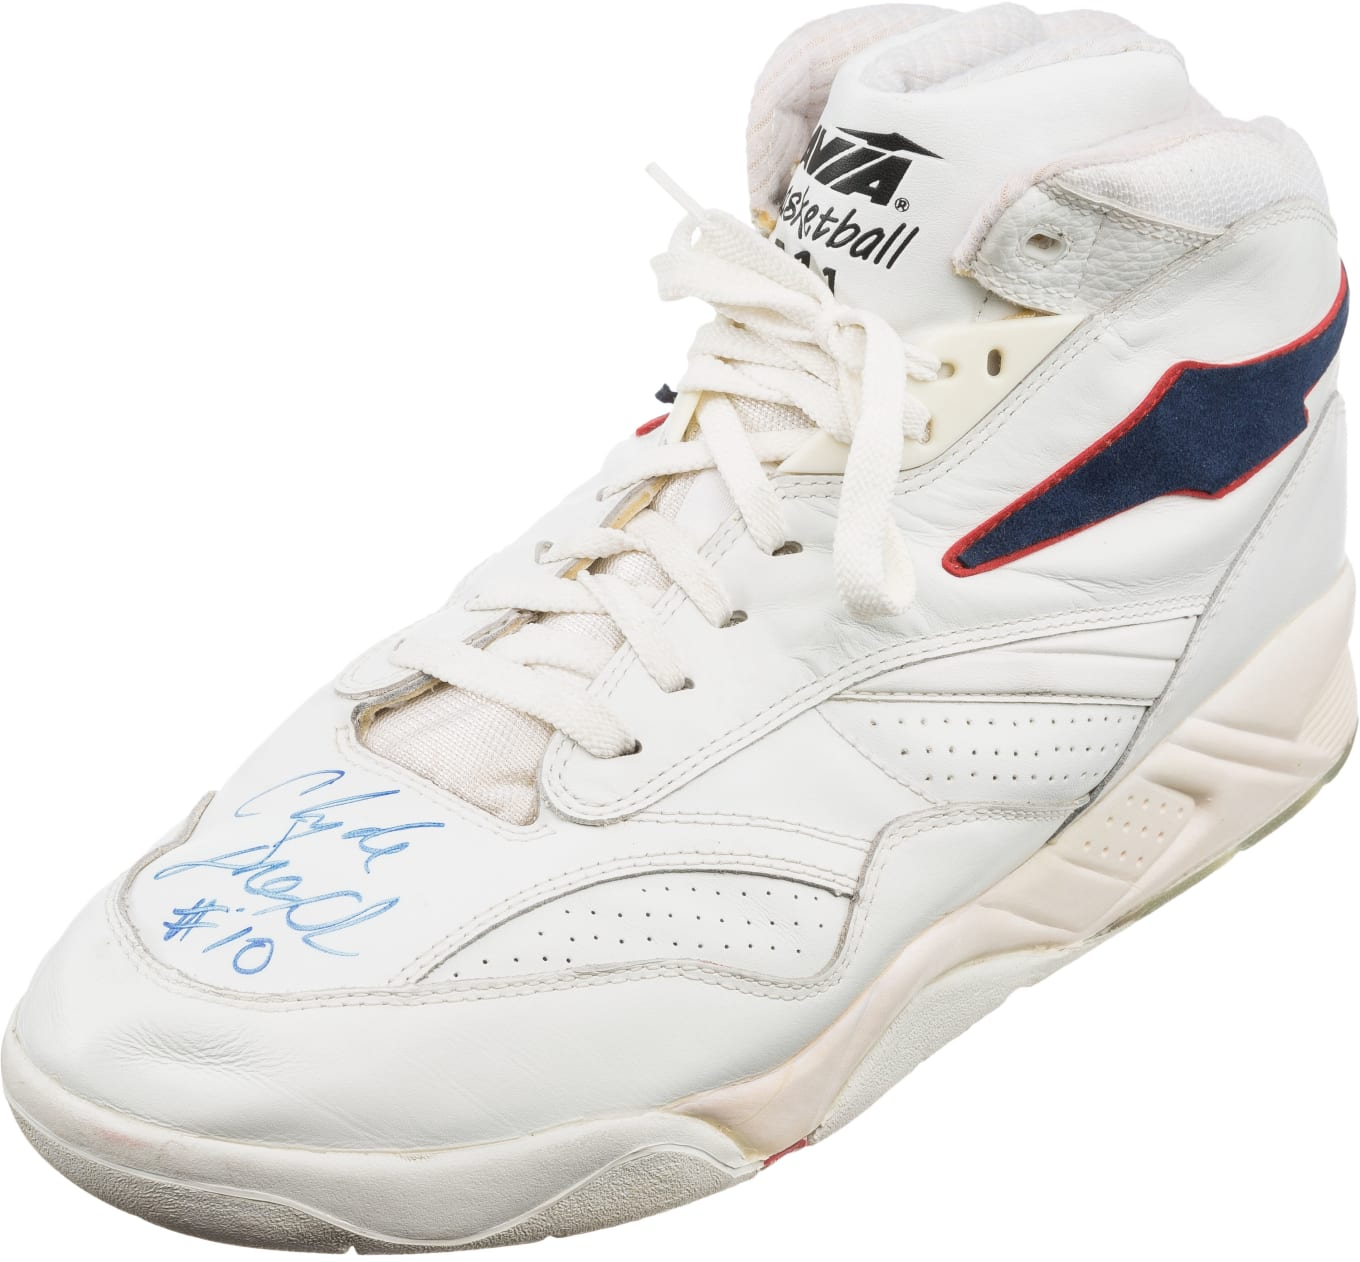 388bfe886b4b4f A Bunch of 1992 Dream Team Sneakers Are Being Auctioned Off